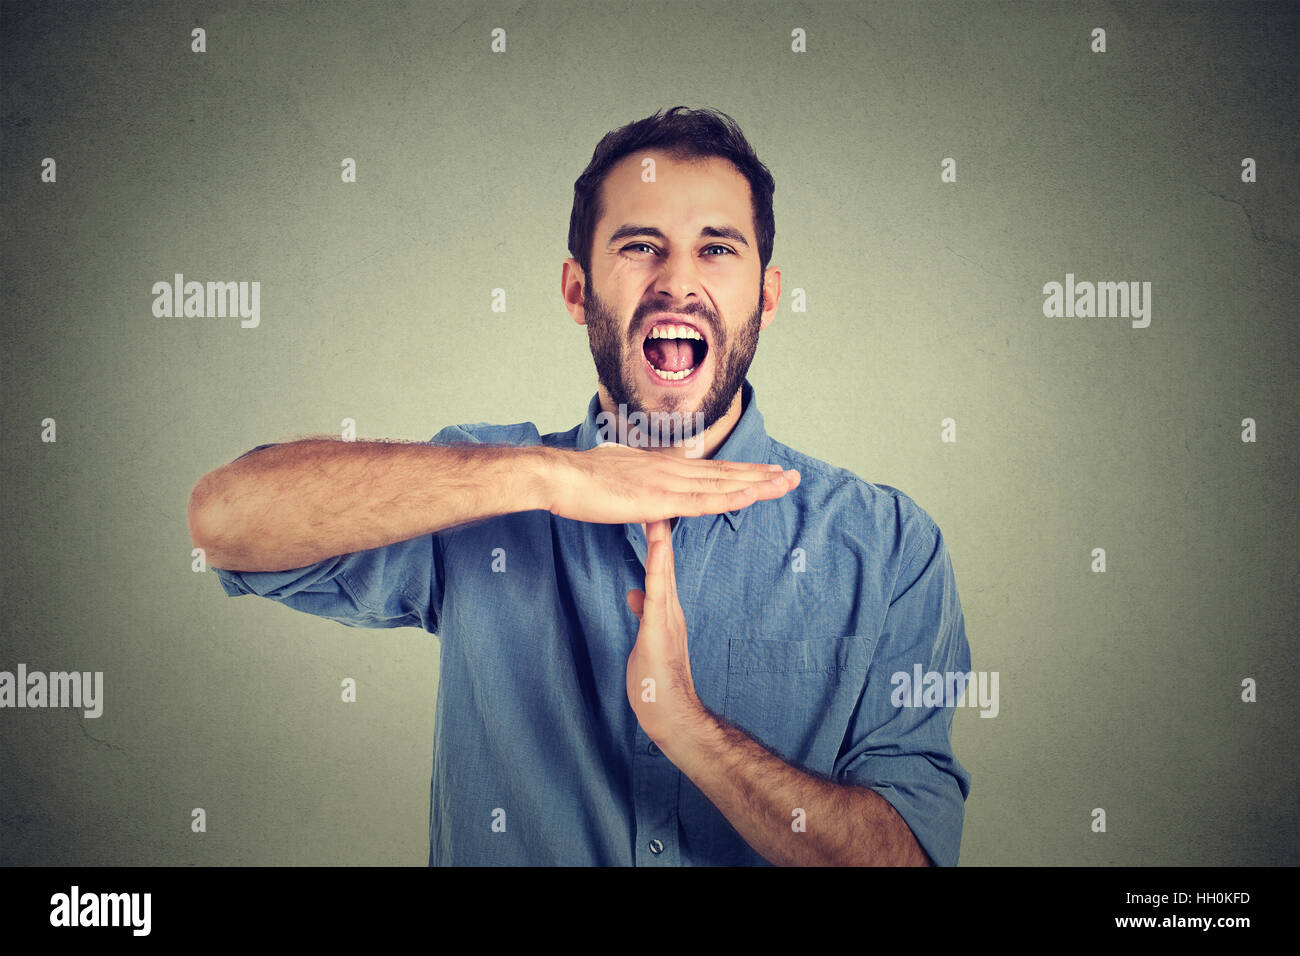 man showing time out hand gesture, frustrated screaming to stop isolated on wall background. Too many things to - Stock Image